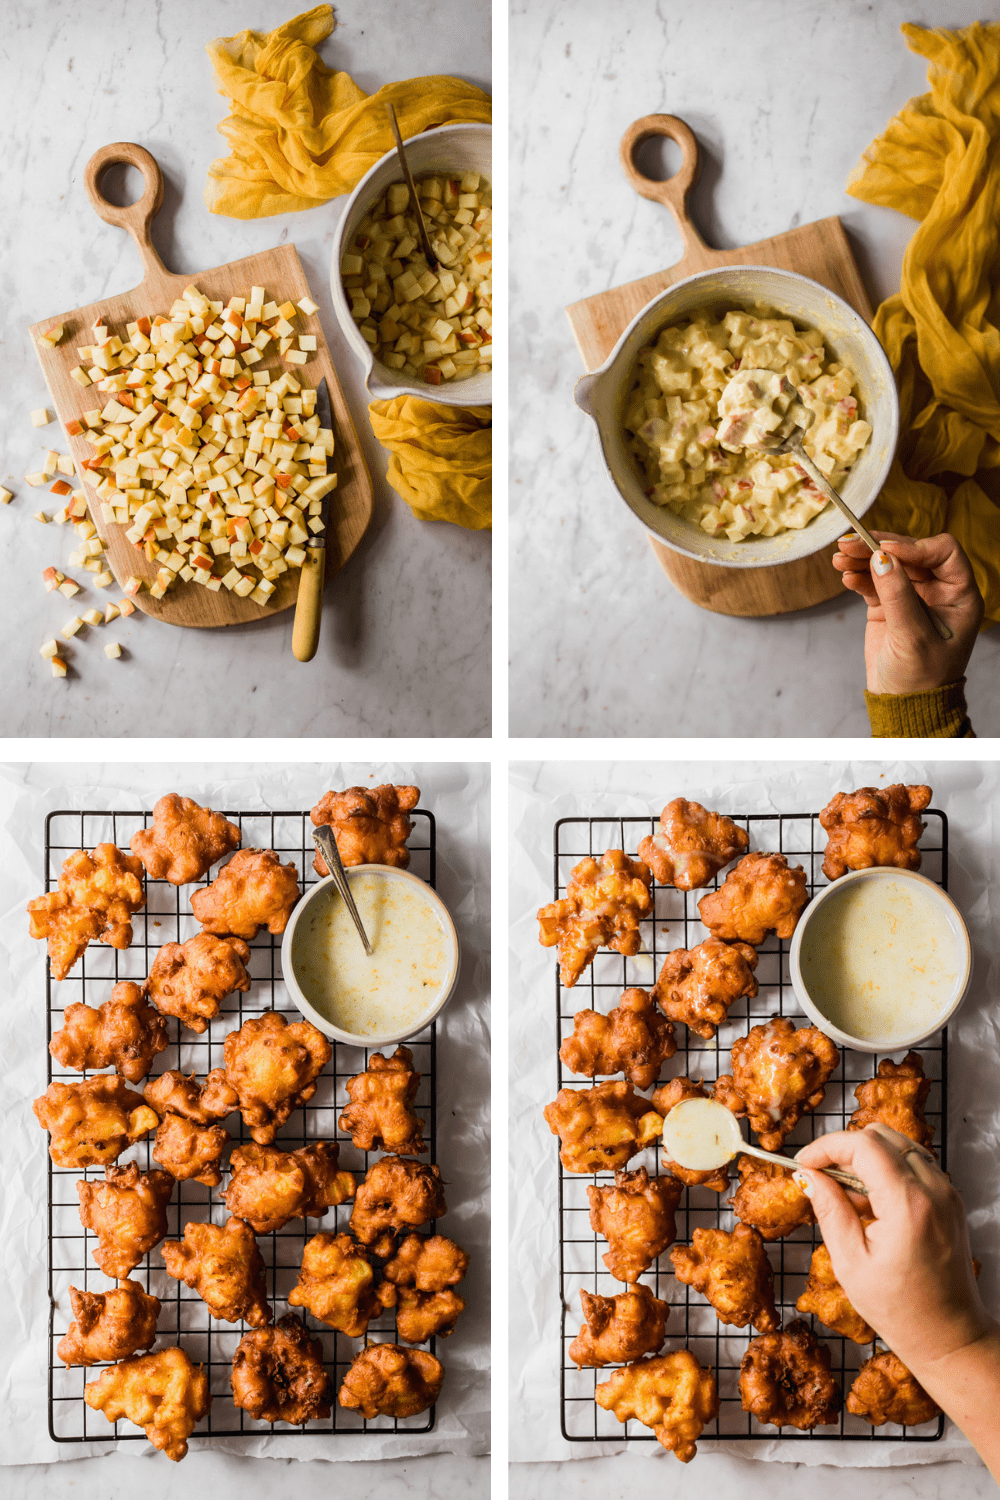 4 stages of preparing batter with apple chunks and pouring glaze on the finished fritters